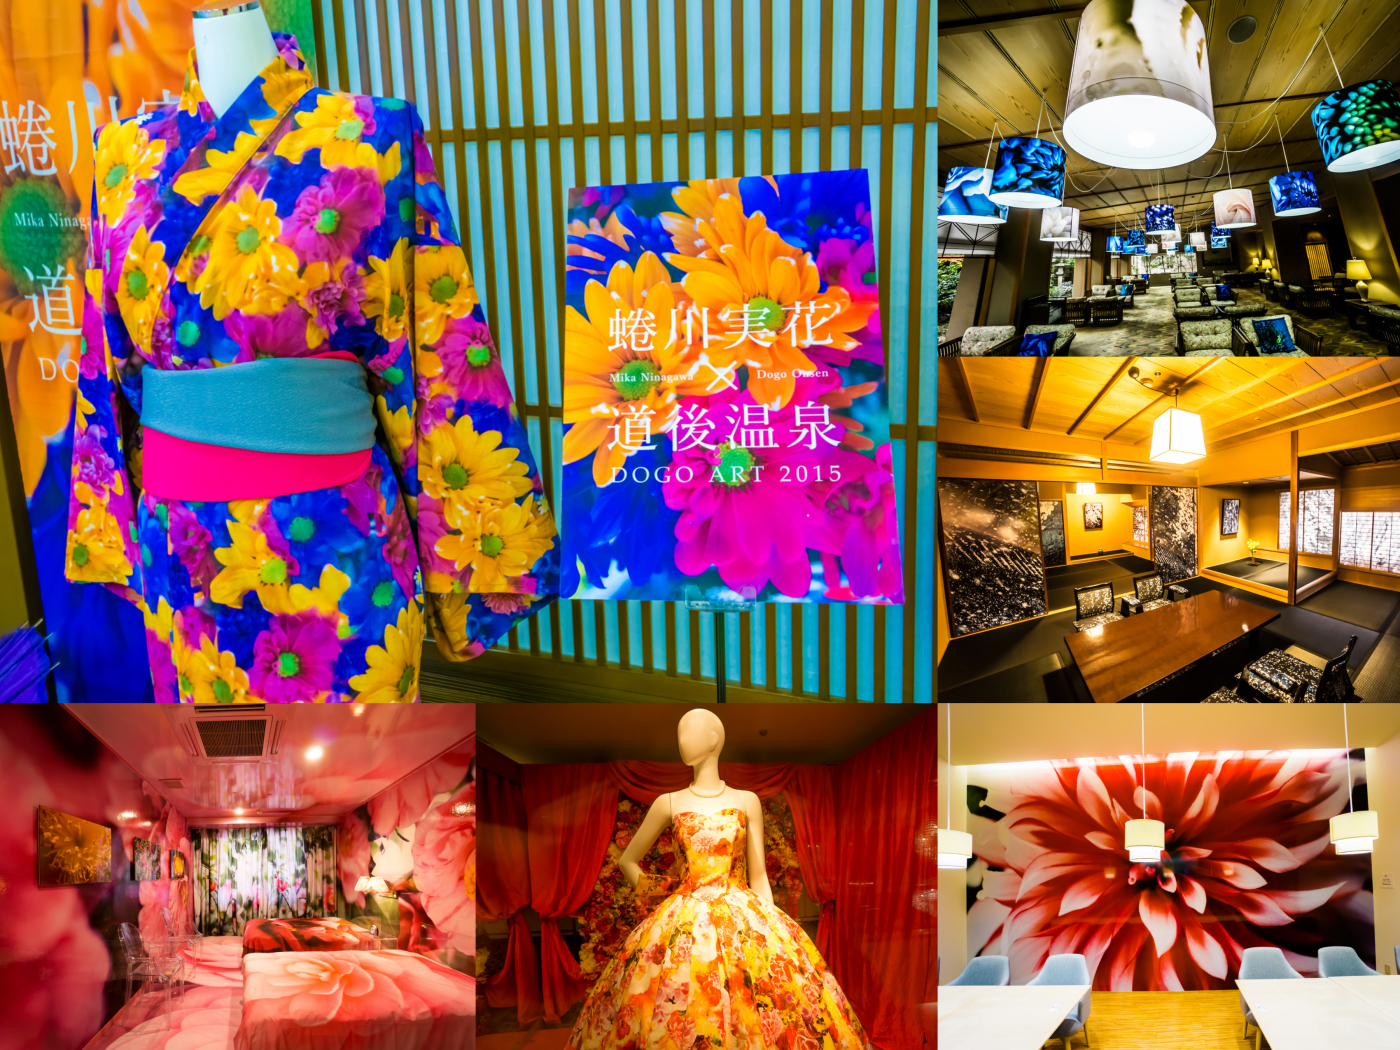 Mika Ninagawa × Dogo Onsen DOGO ART 2015 featured image